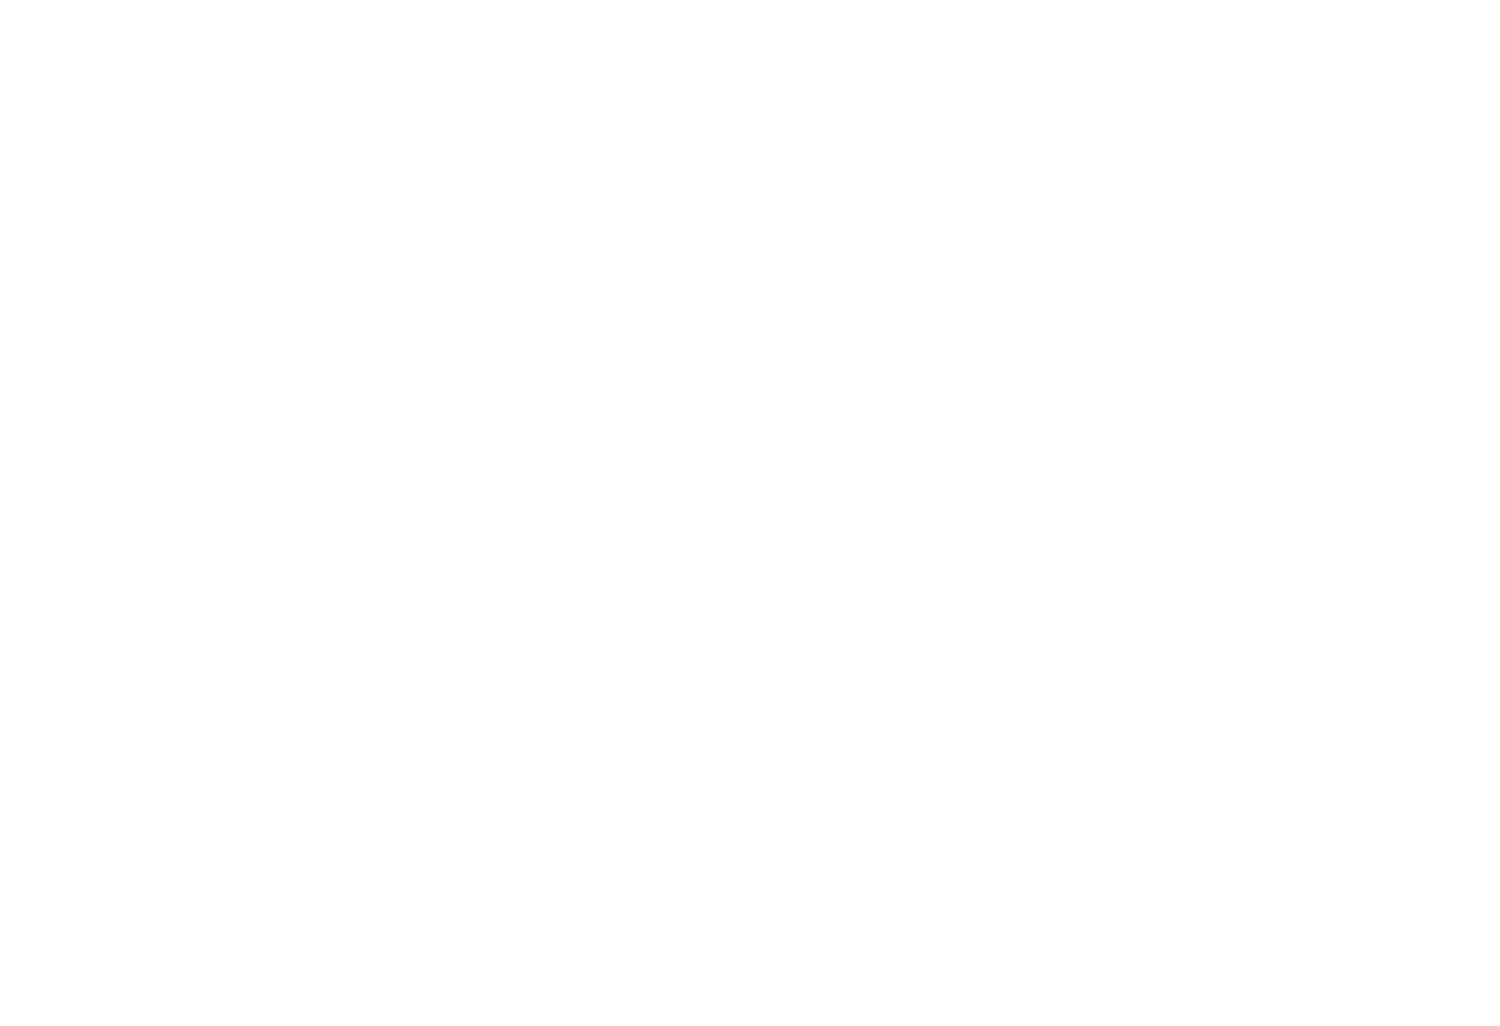 Nú Body & Mind